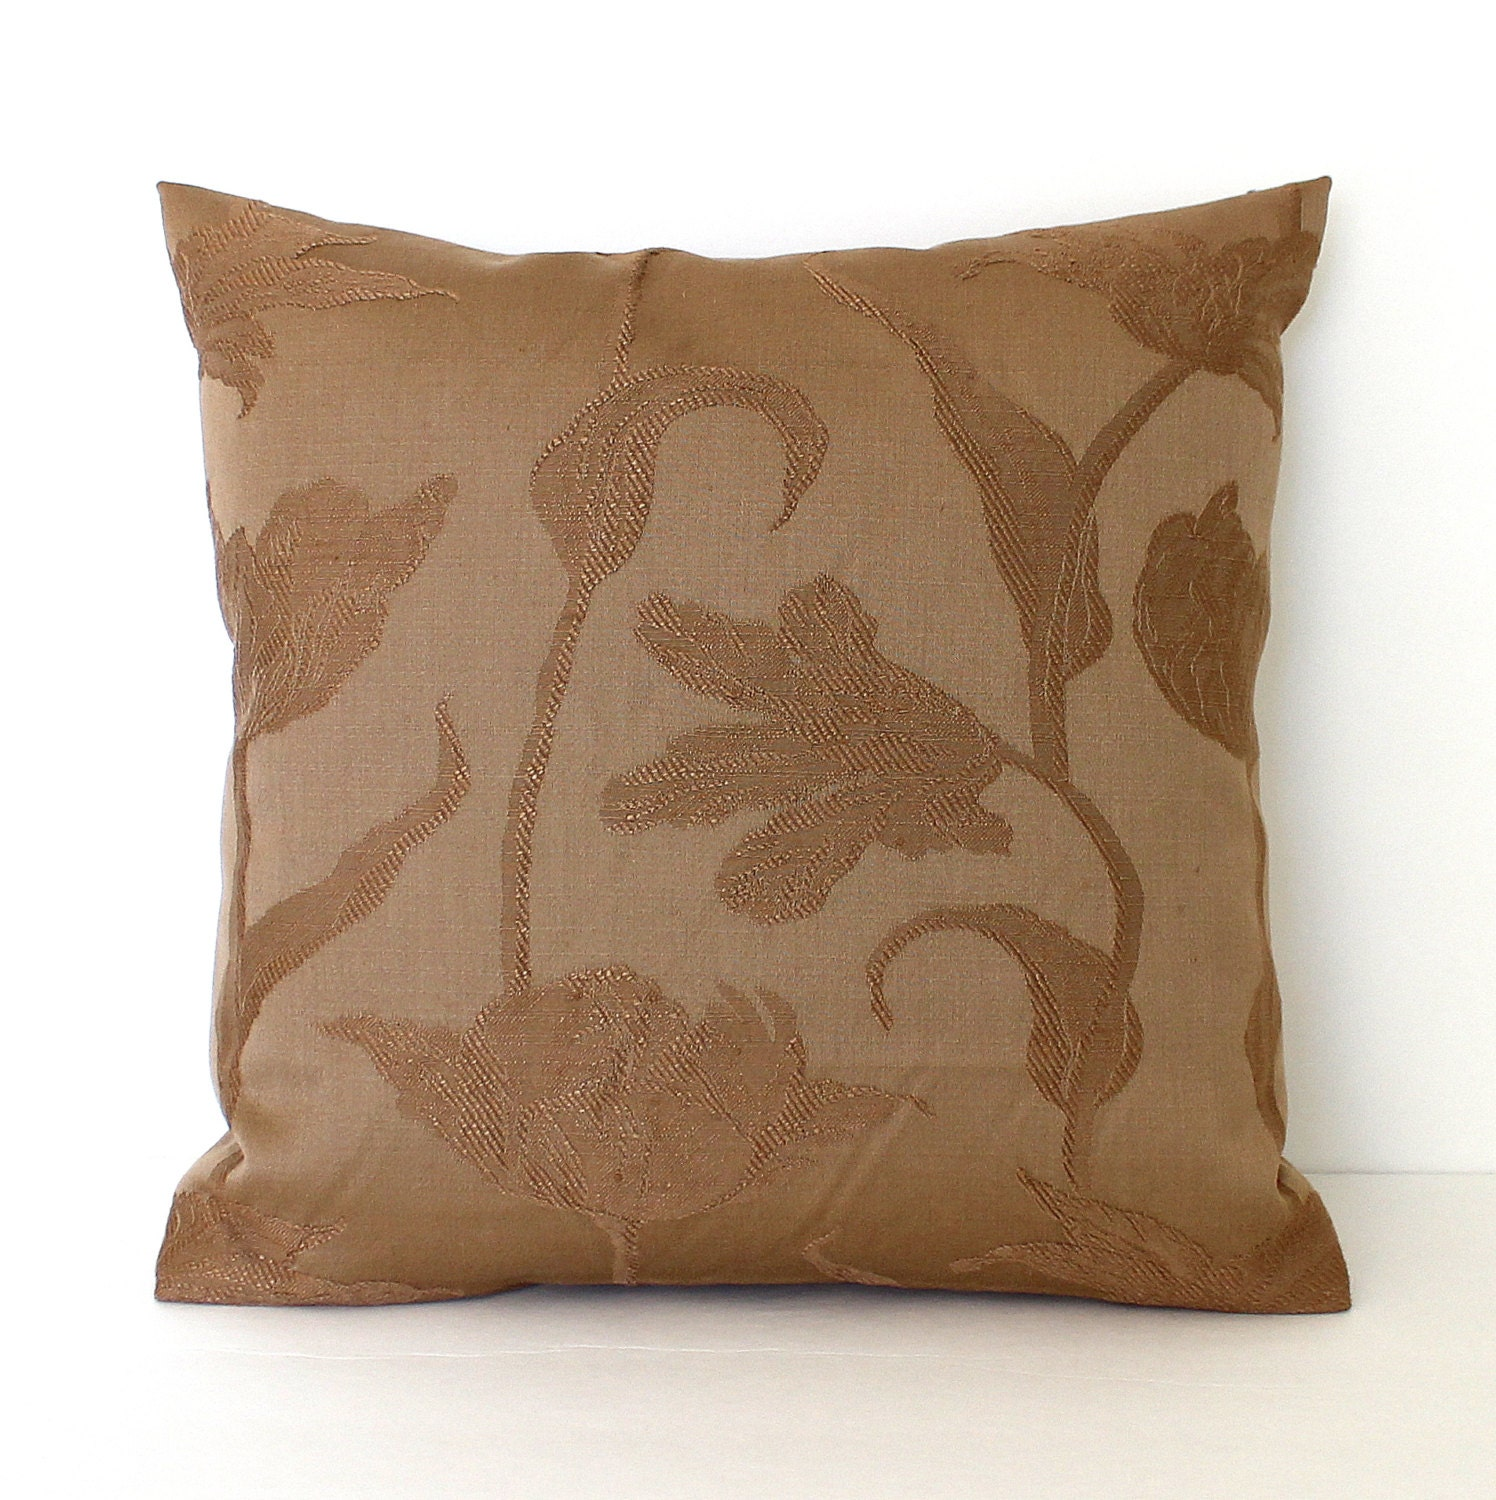 Fabric For Throw Pillow Covers : Brown Pillow Cover Floral Upholstery Fabric Decorative Pillow